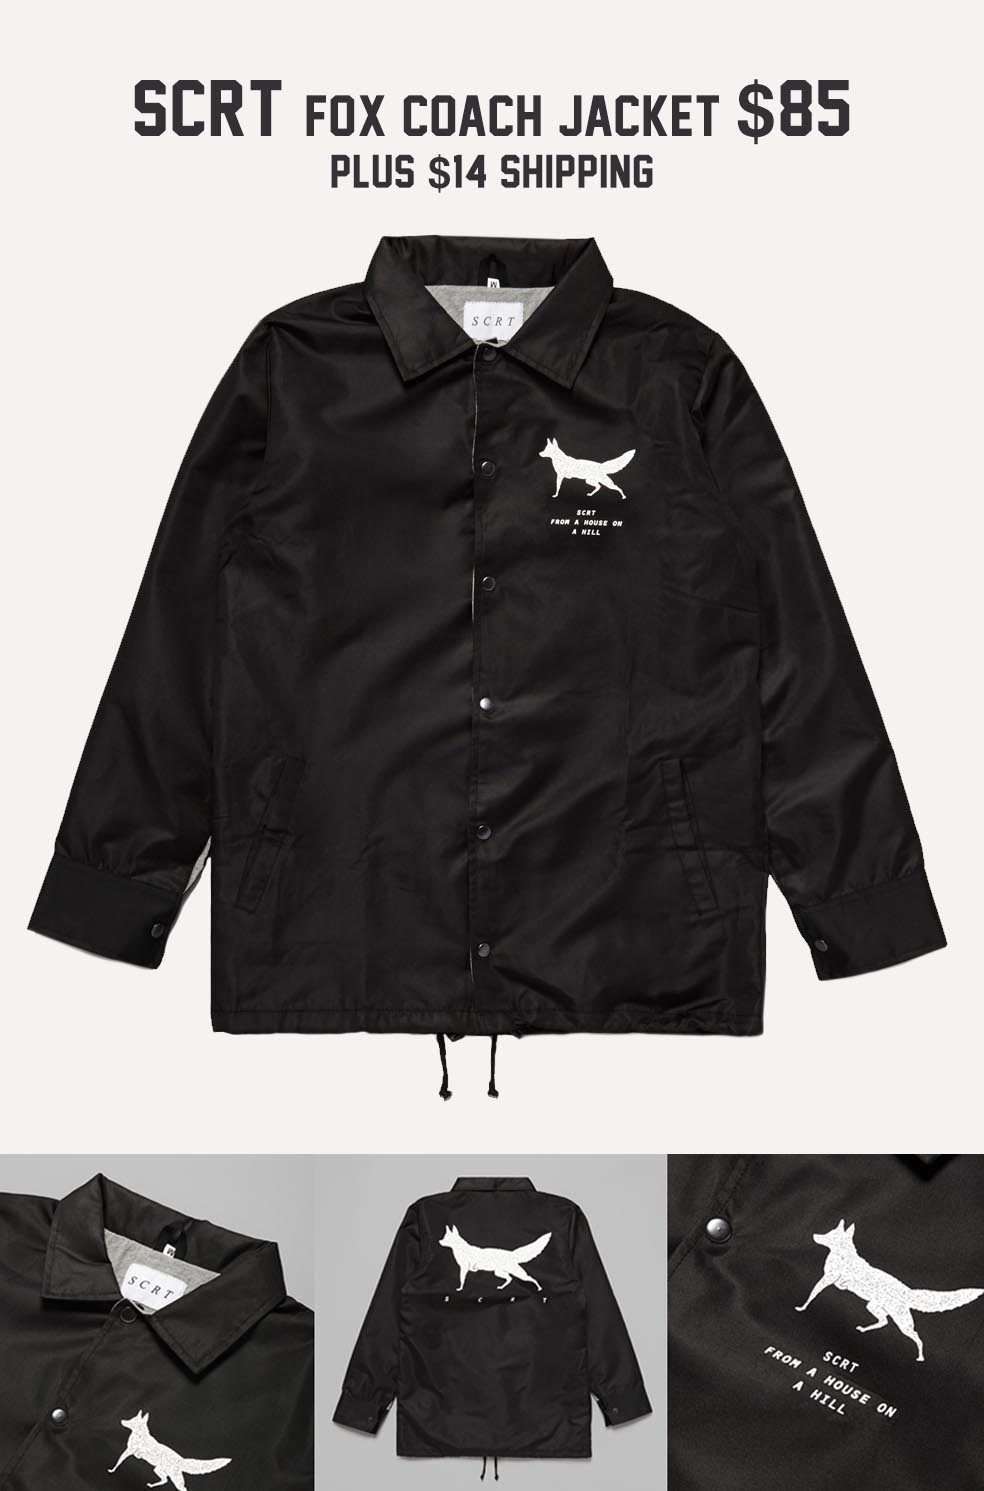 Stefan's Head - Fall Jackets Collection - SCRT Fox Coach Jacket